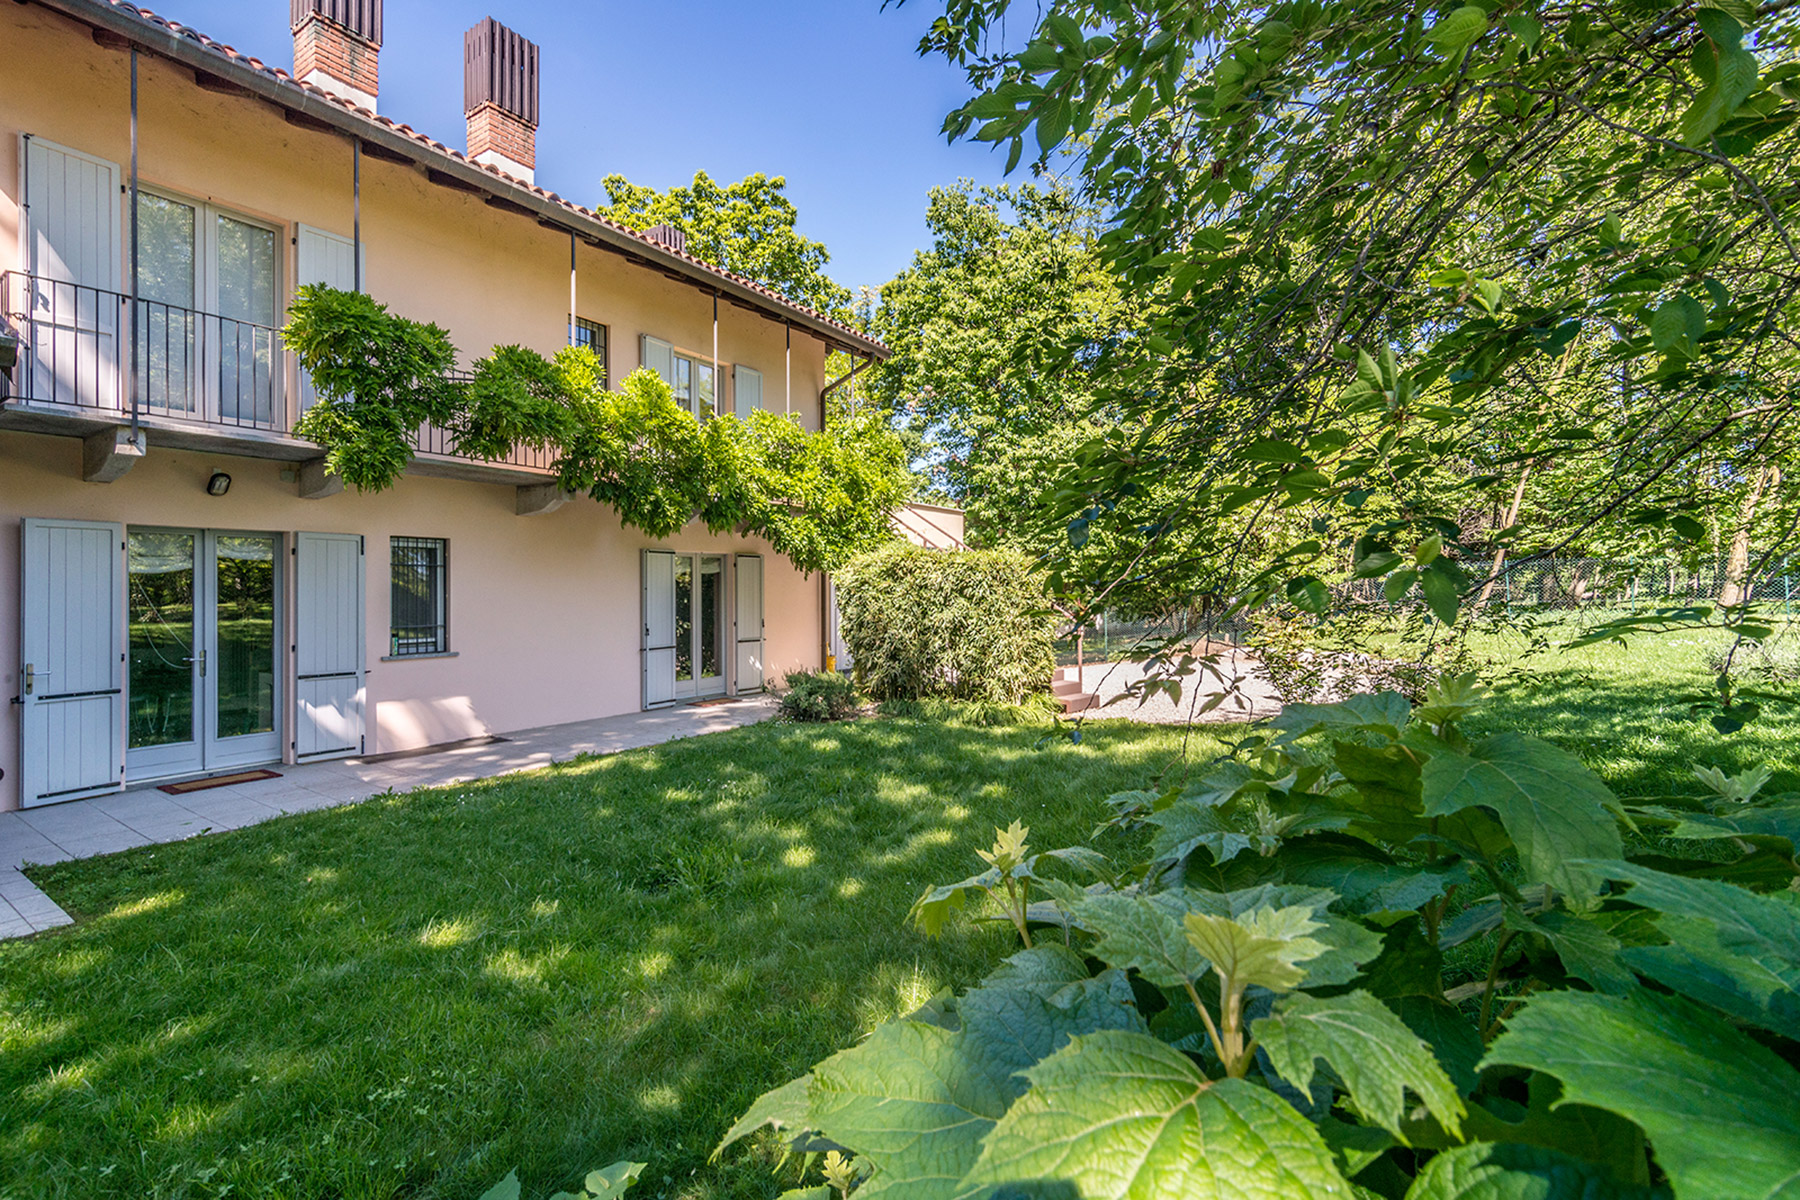 Additional photo for property listing at Modern country house with private garden Agrate Conturbia, Novara Italy